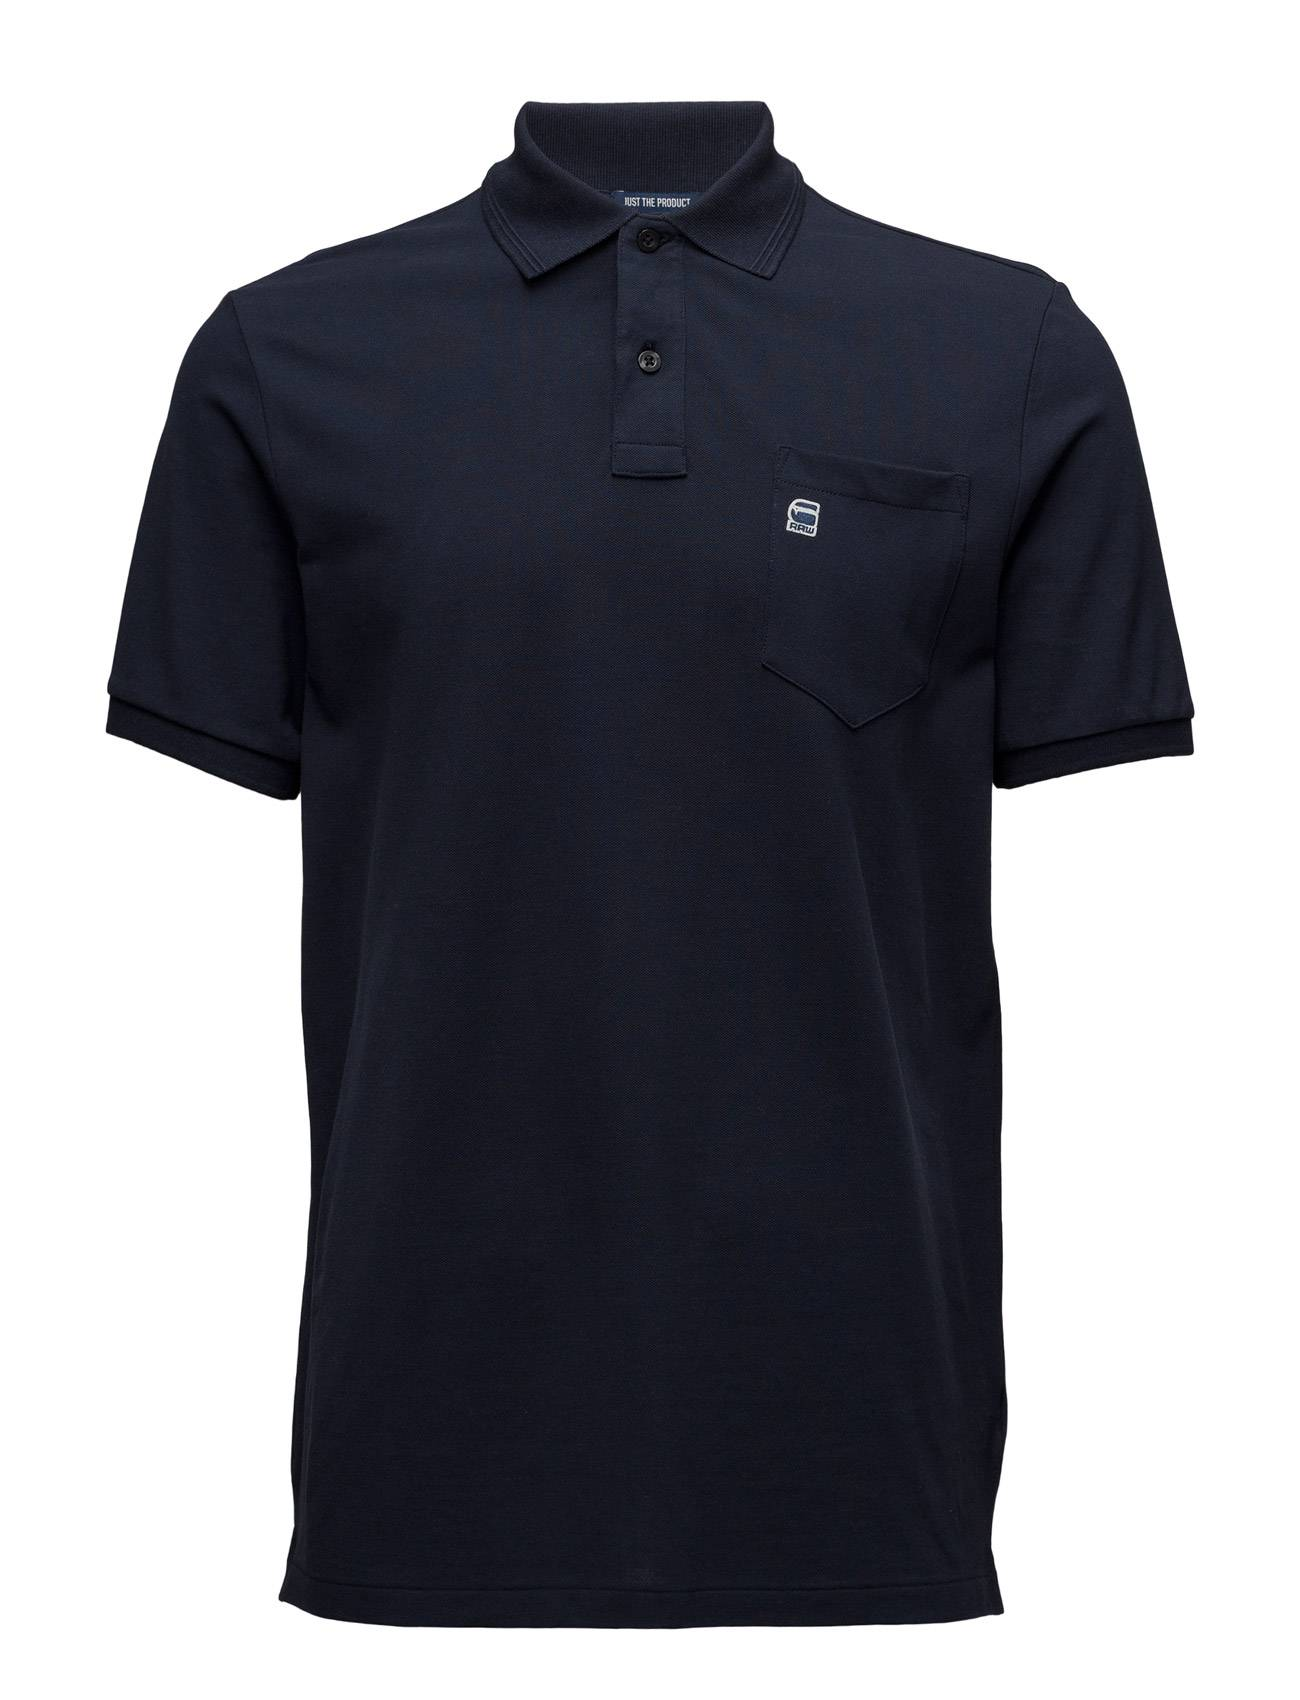 G-star Core Pocket Polo S